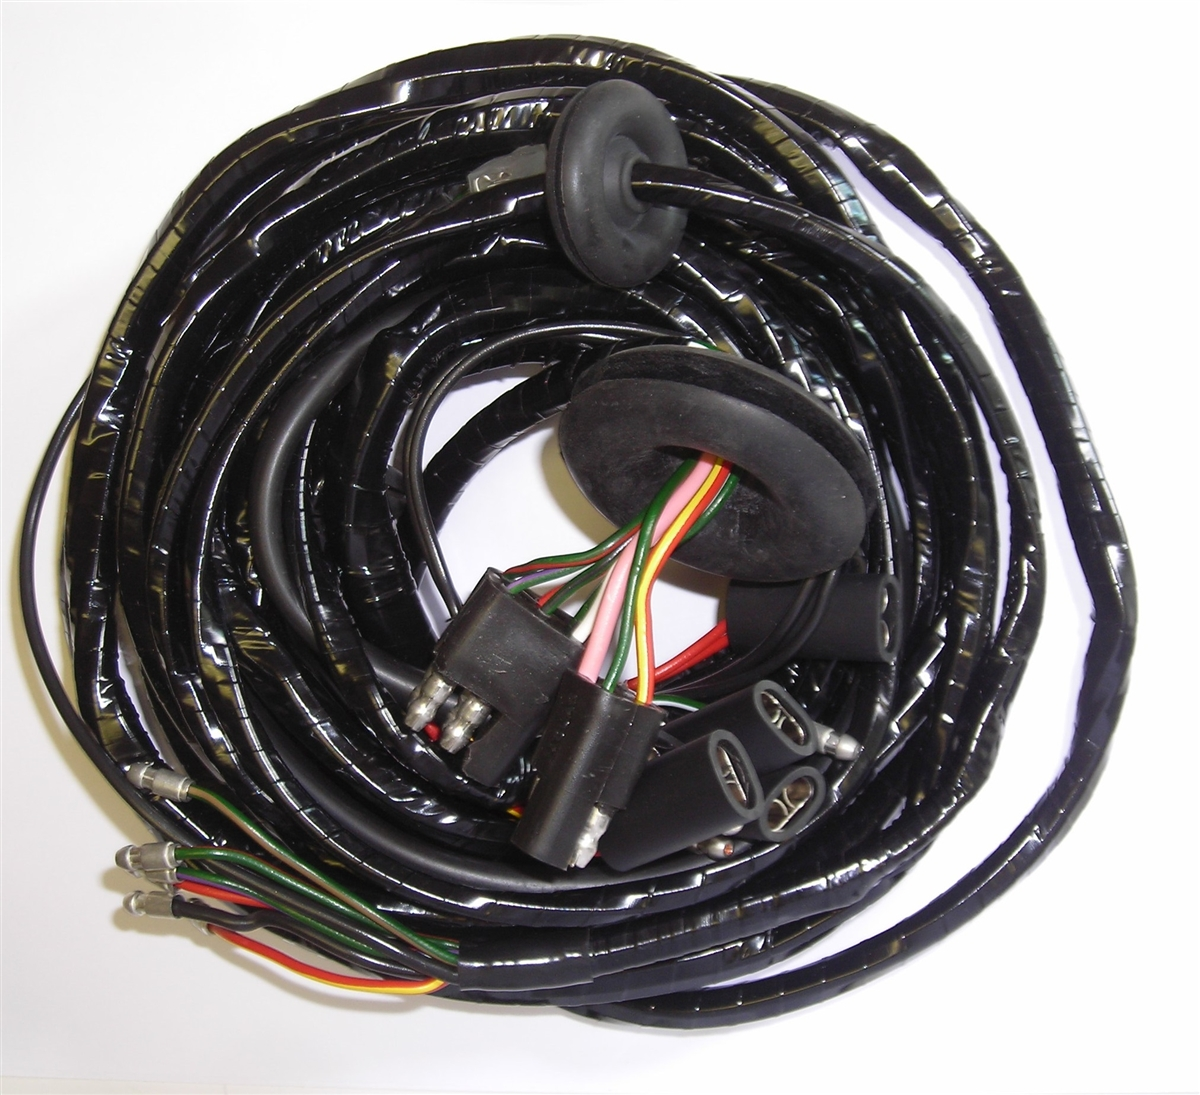 LR337 2?1402650264 rover body wiring harness land rover wiring harness at virtualis.co